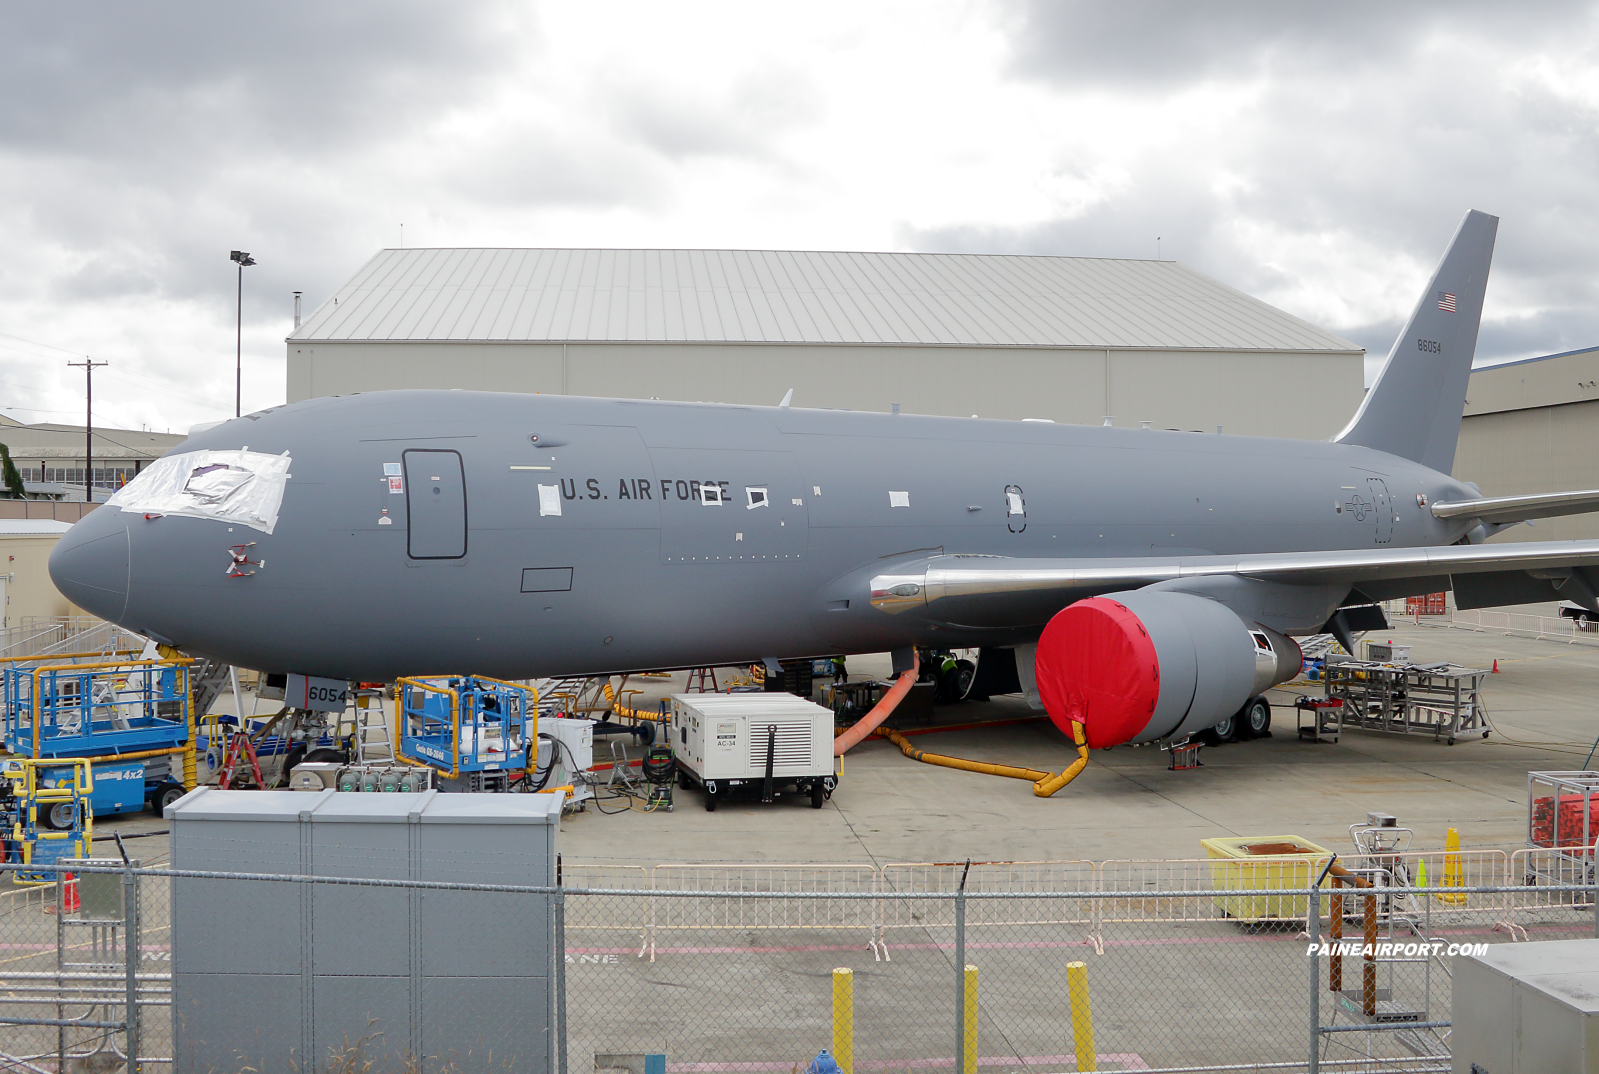 KC-46A 18-46054 at KPAE Paine Field